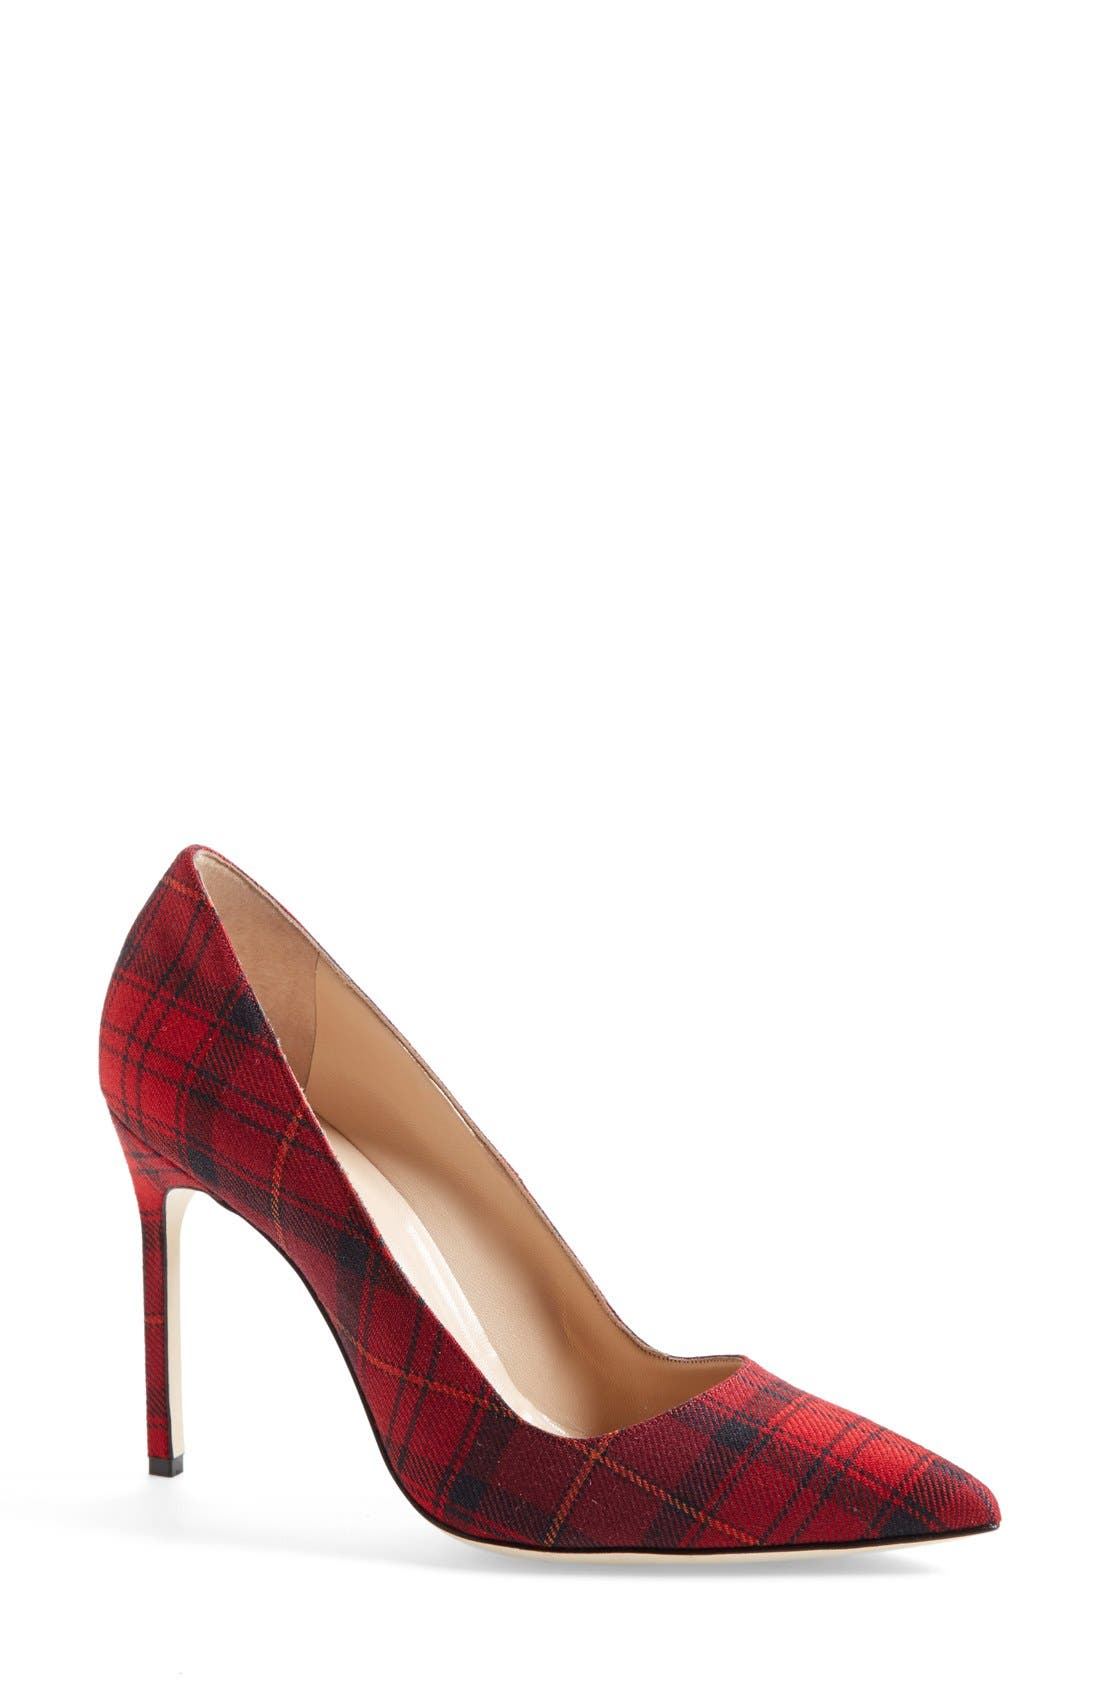 BB Pointy Toe Pump,                             Main thumbnail 1, color,                             Red Plaid Fabric